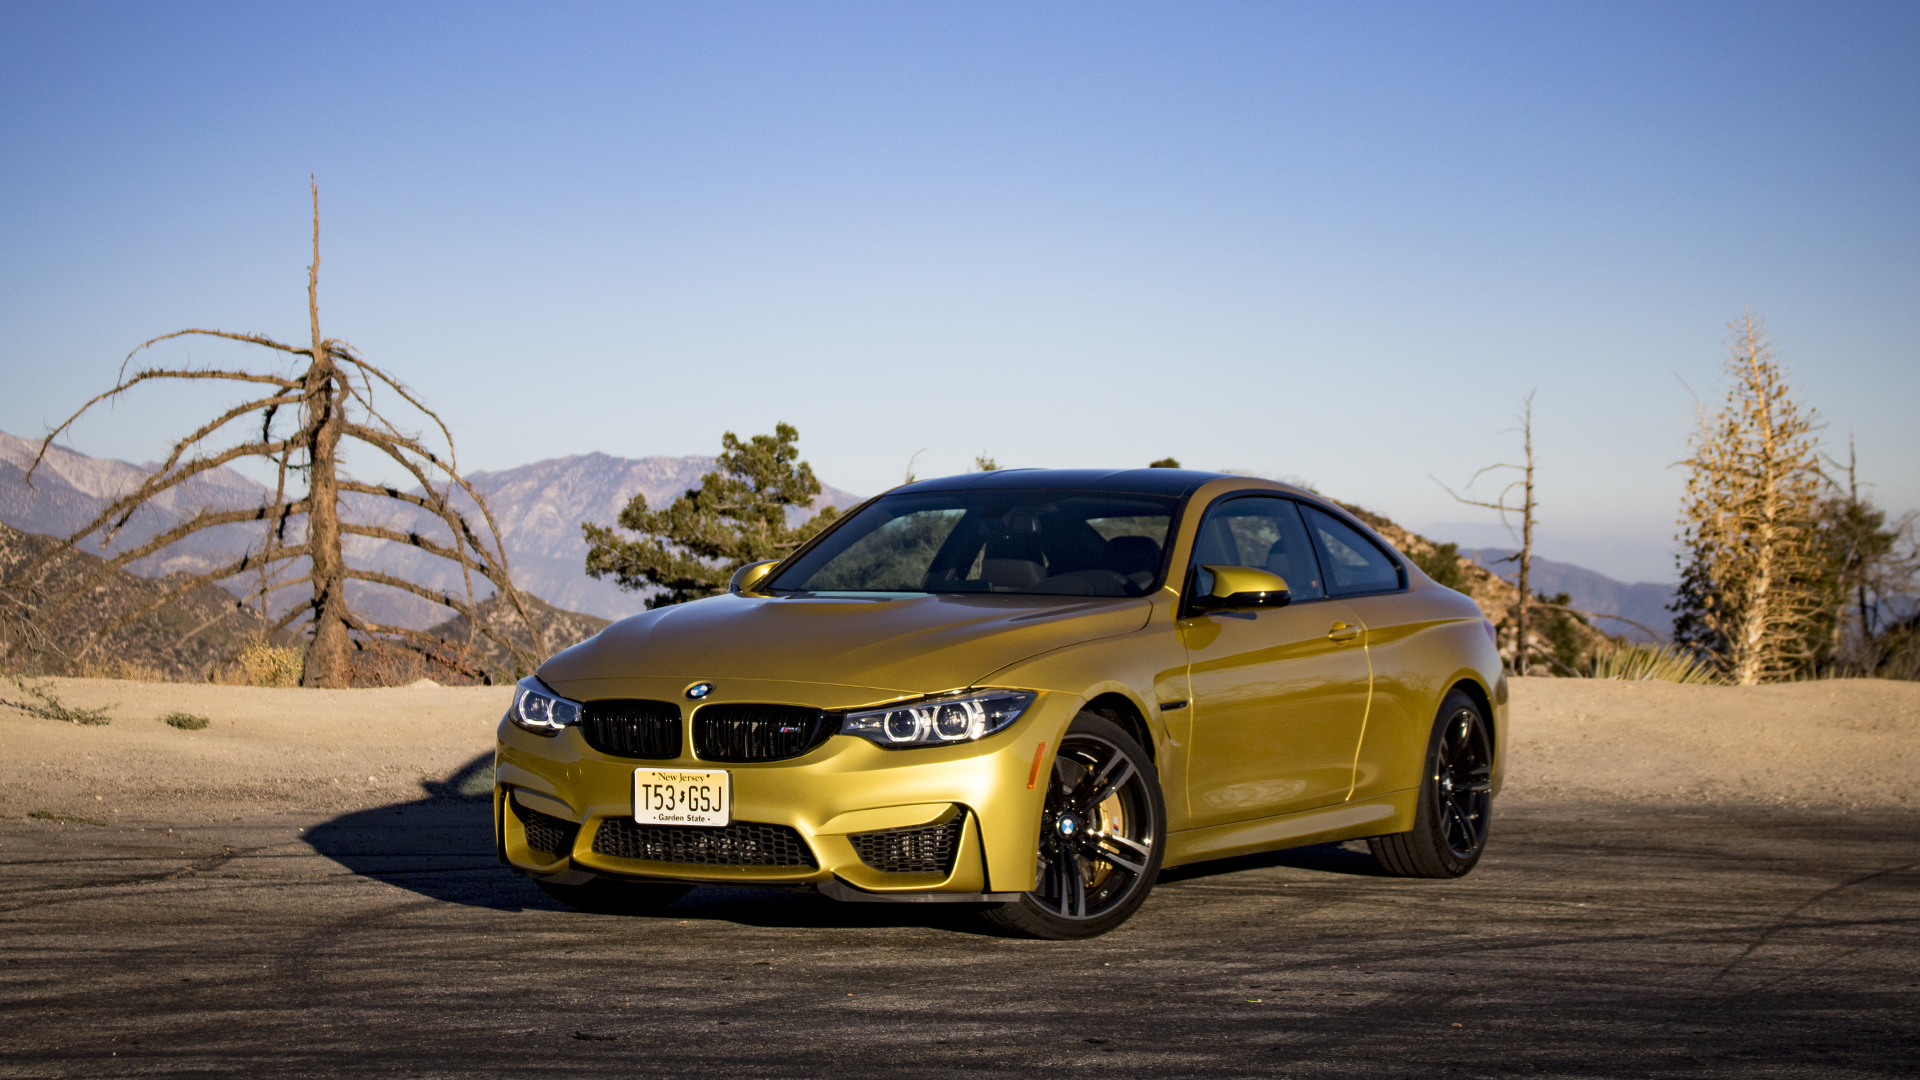 2018 BMW M4 Test Drive Review: The Gold Standard Holds Its Luster